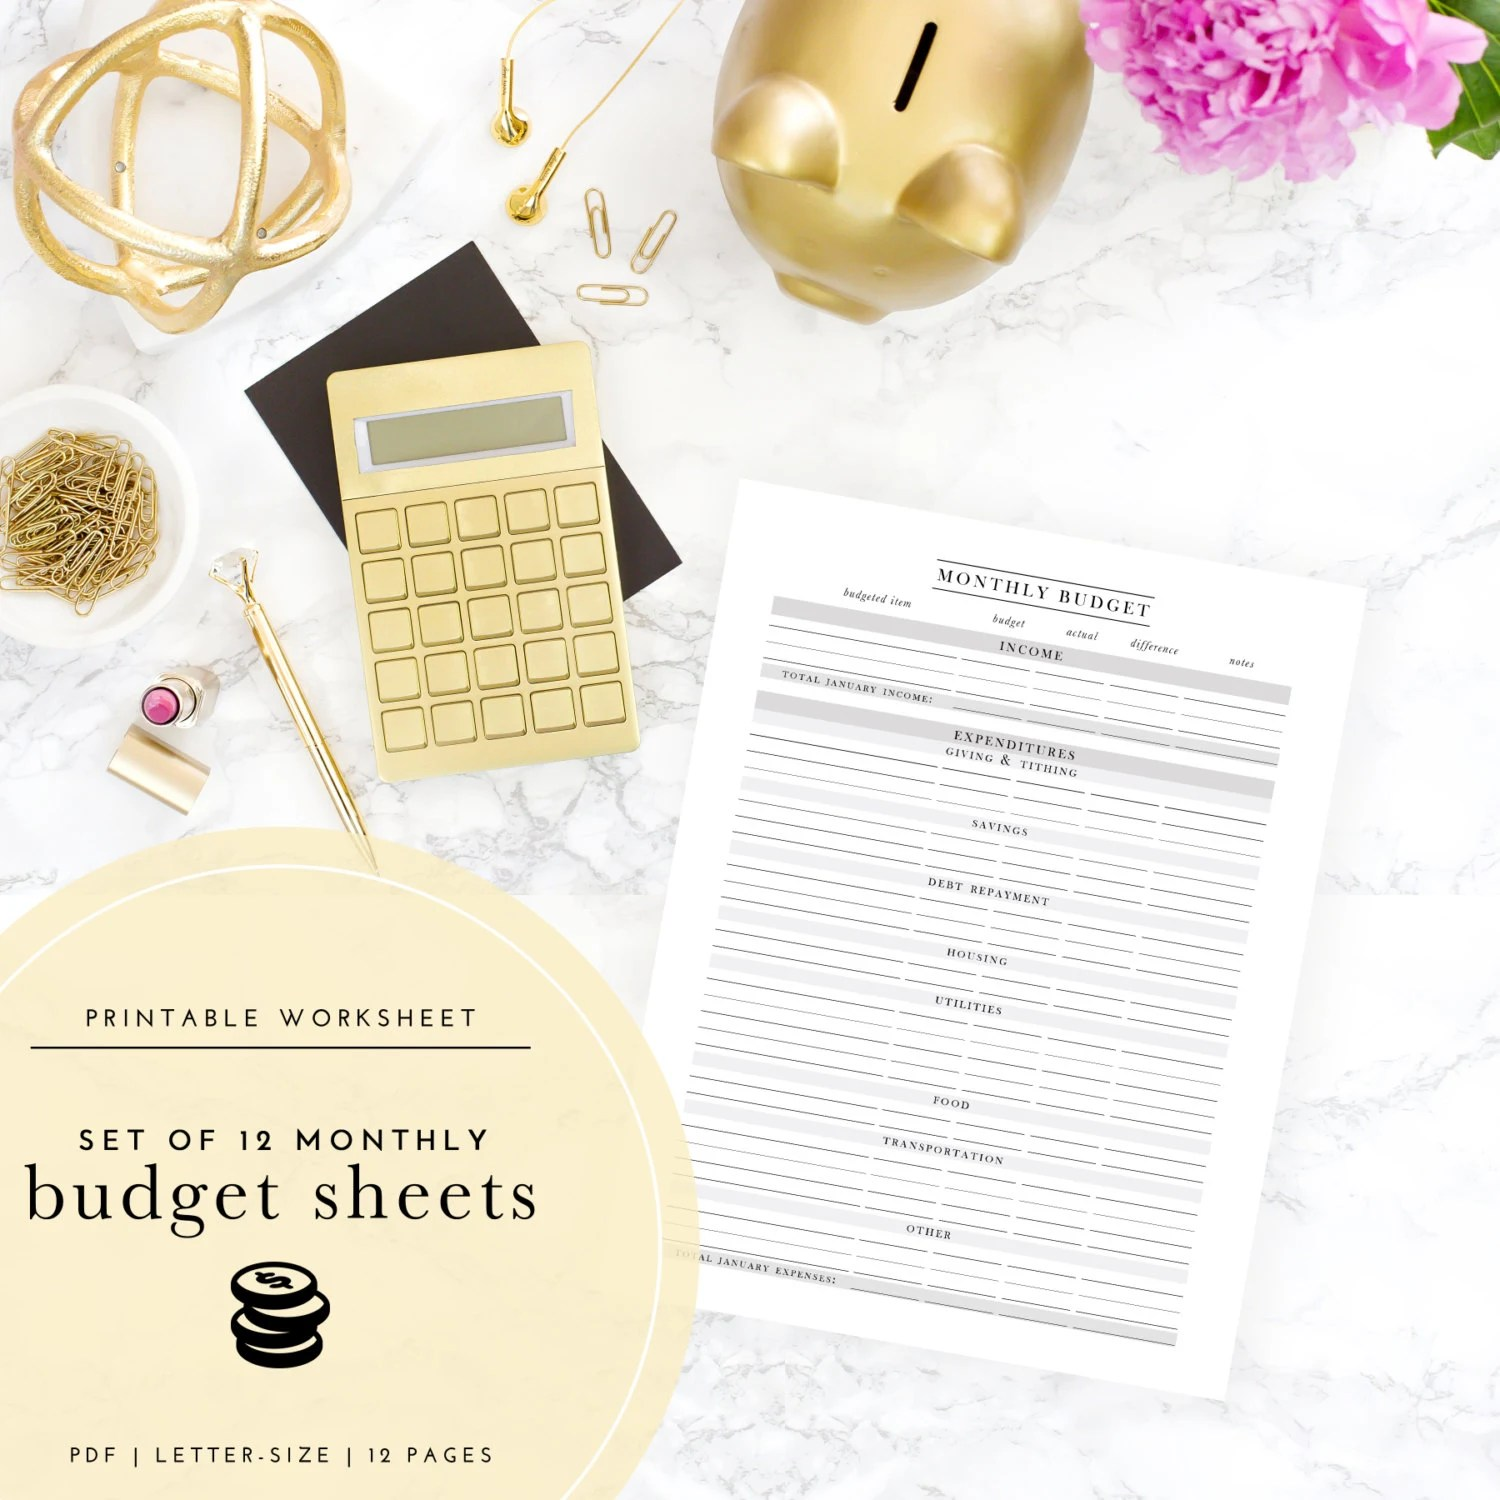 Printable Monthly Budget Worksheets Set Of 12